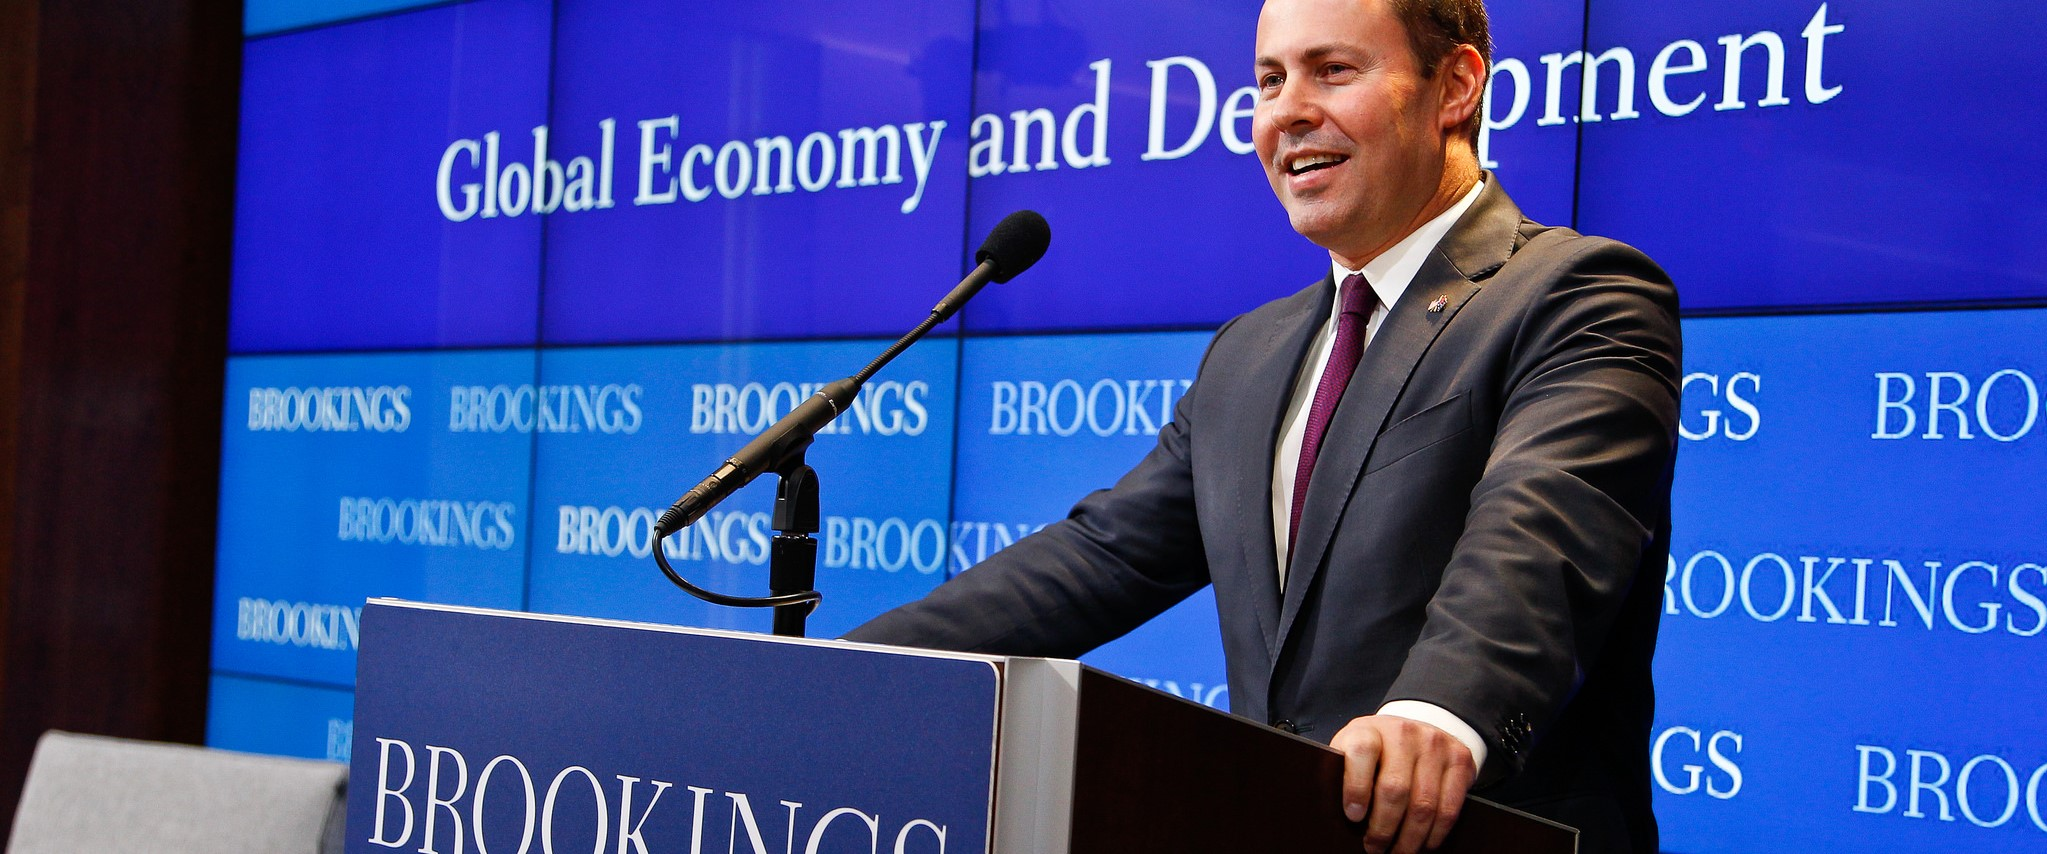 Environment Minister Josh Frydenberg was subject to claims he may be a Hungarian citizen. (Photo: Brookings Institution/Flickr)